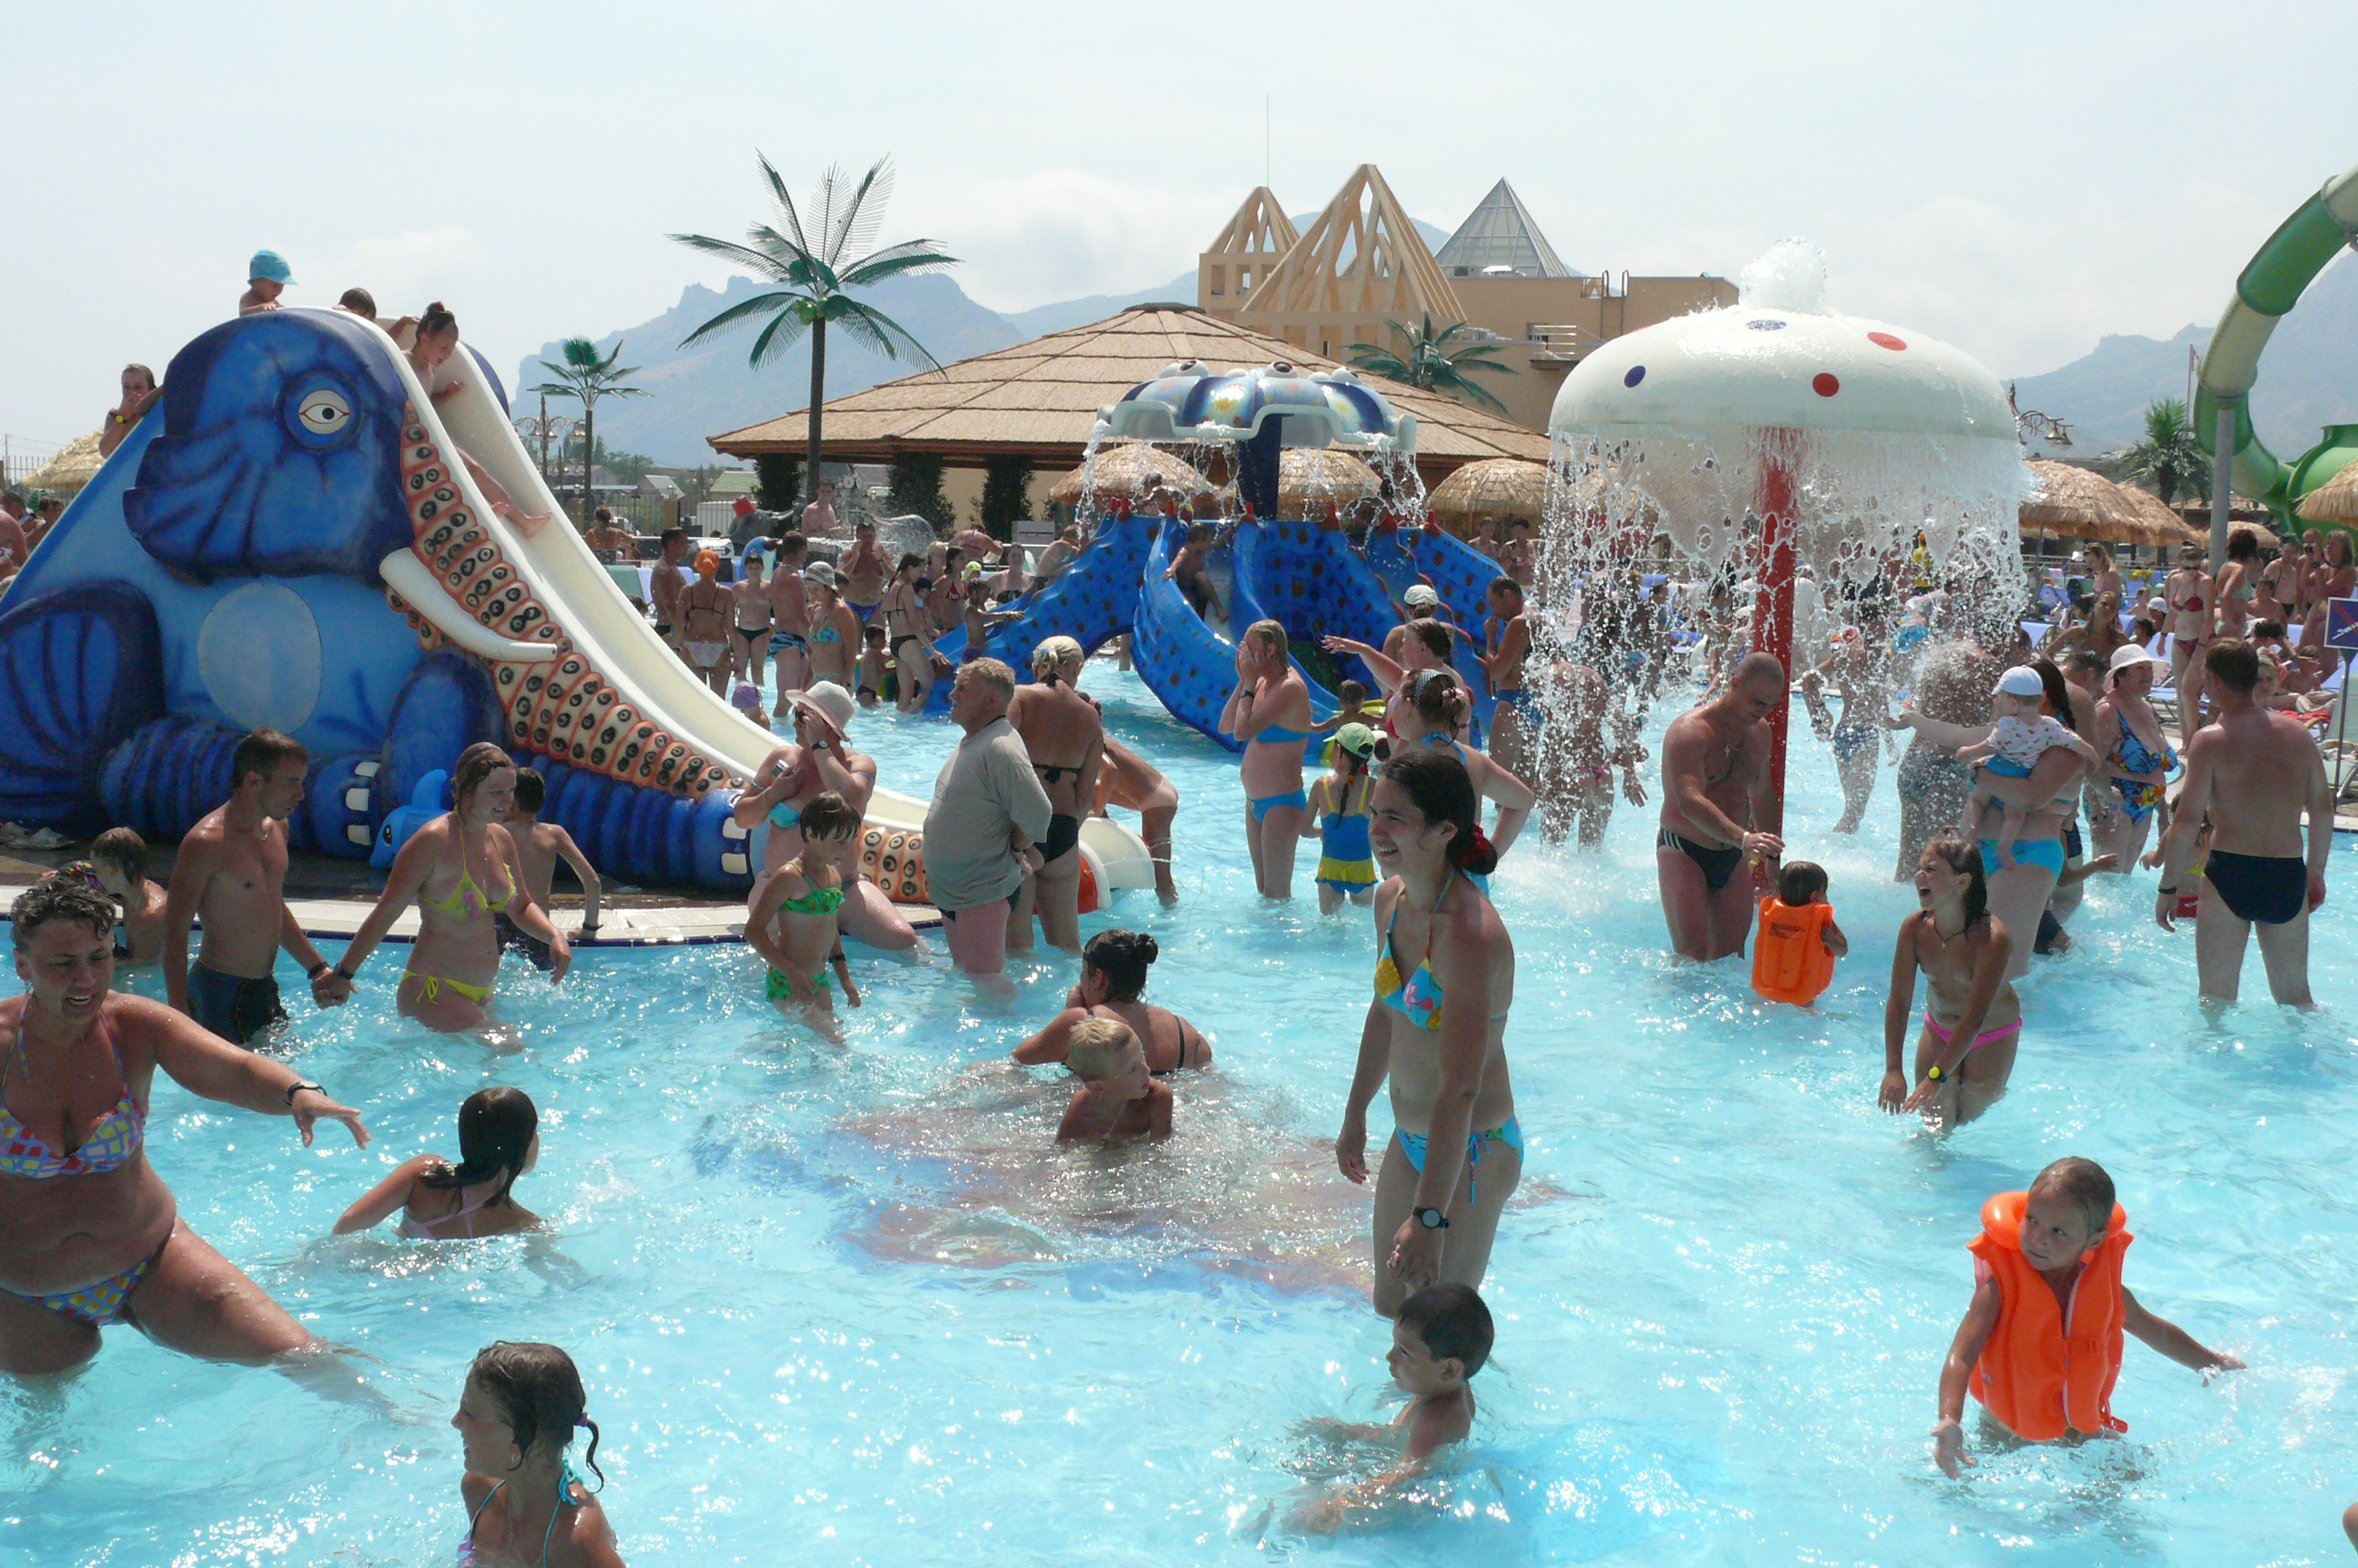 https://aquapark-koktebel.ru/wp-content/uploads/2020/04/malye-gorki.jpg